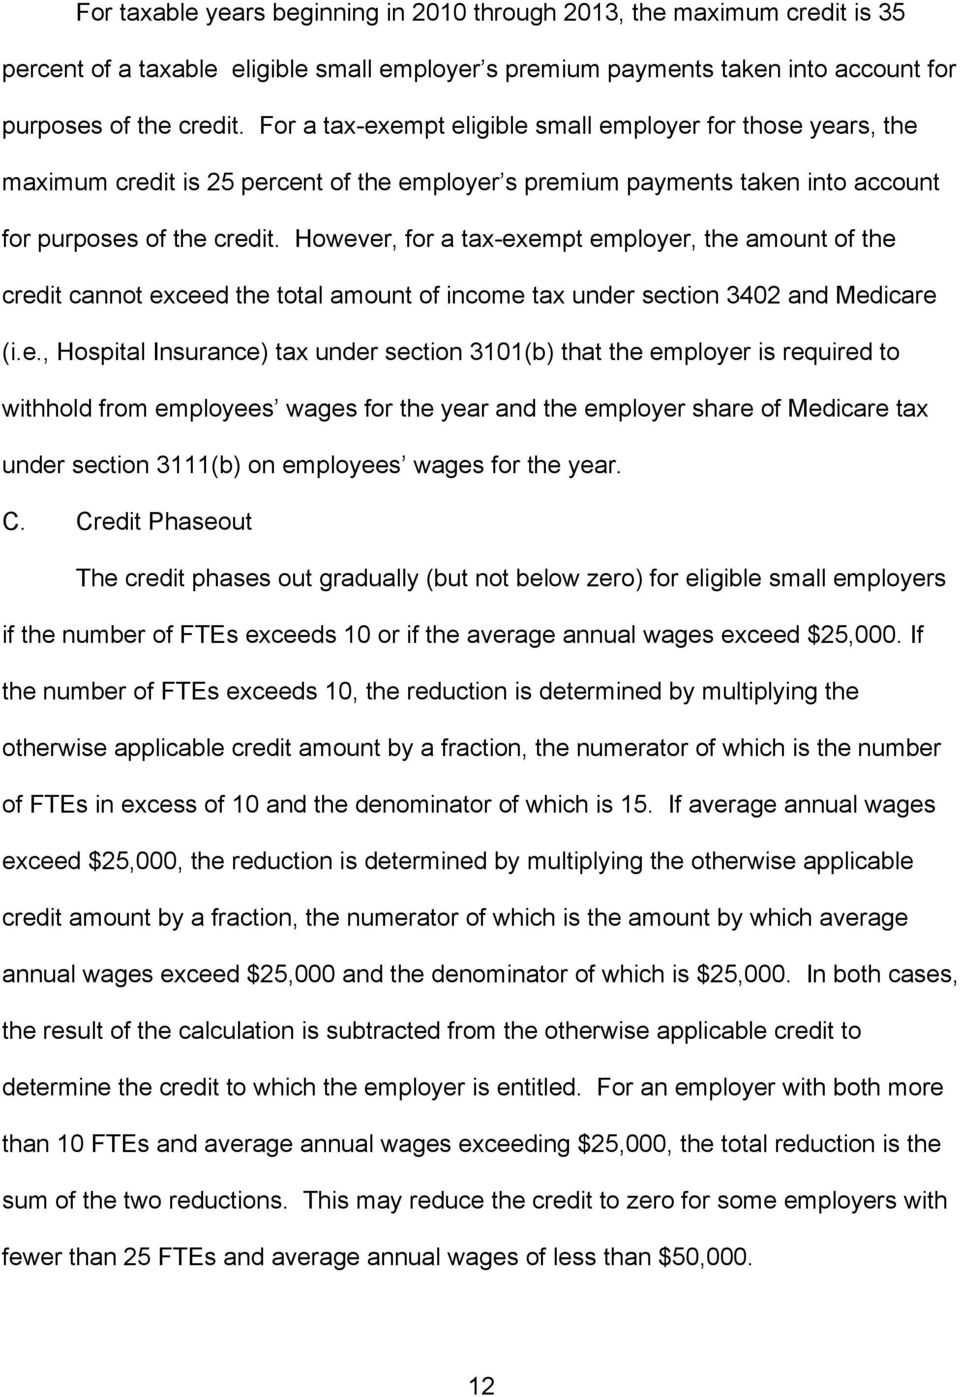 However, for a tax-exempt employer, the amount of the credit cannot exceed the total amount of income tax under section 3402 and Medicare (i.e., Hospital Insurance) tax under section 3101(b) that the